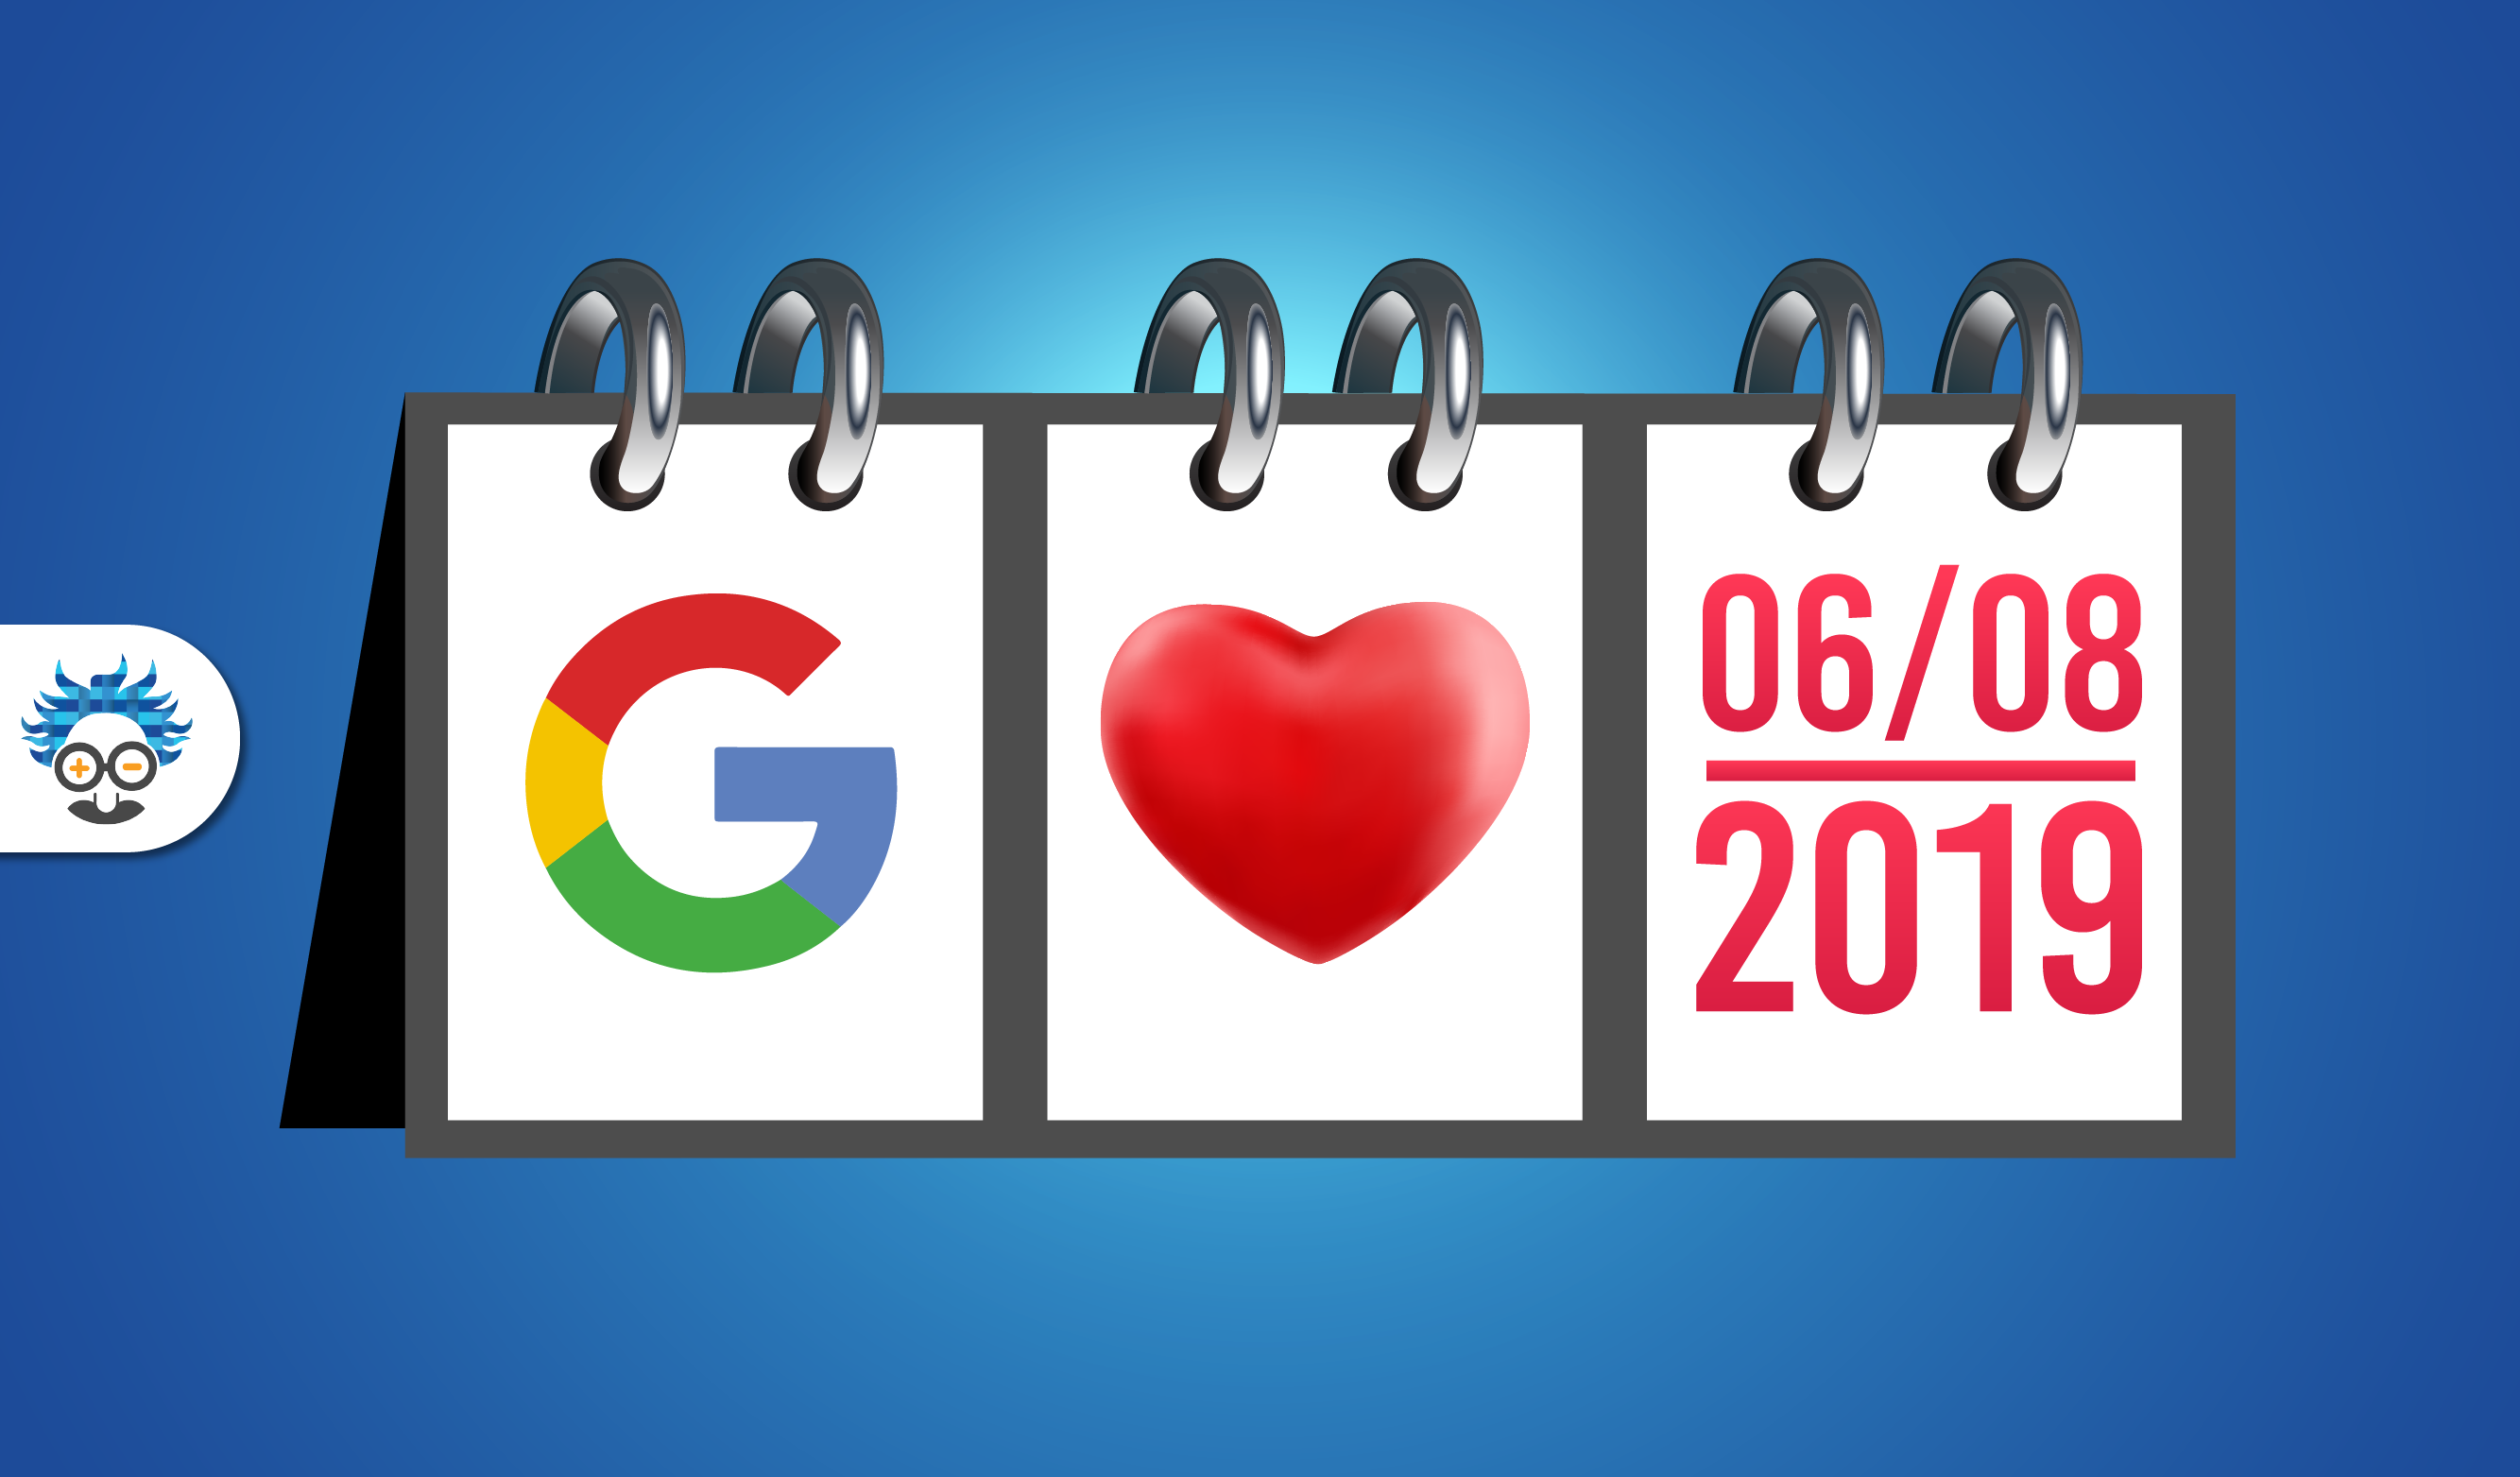 google publishing schedule